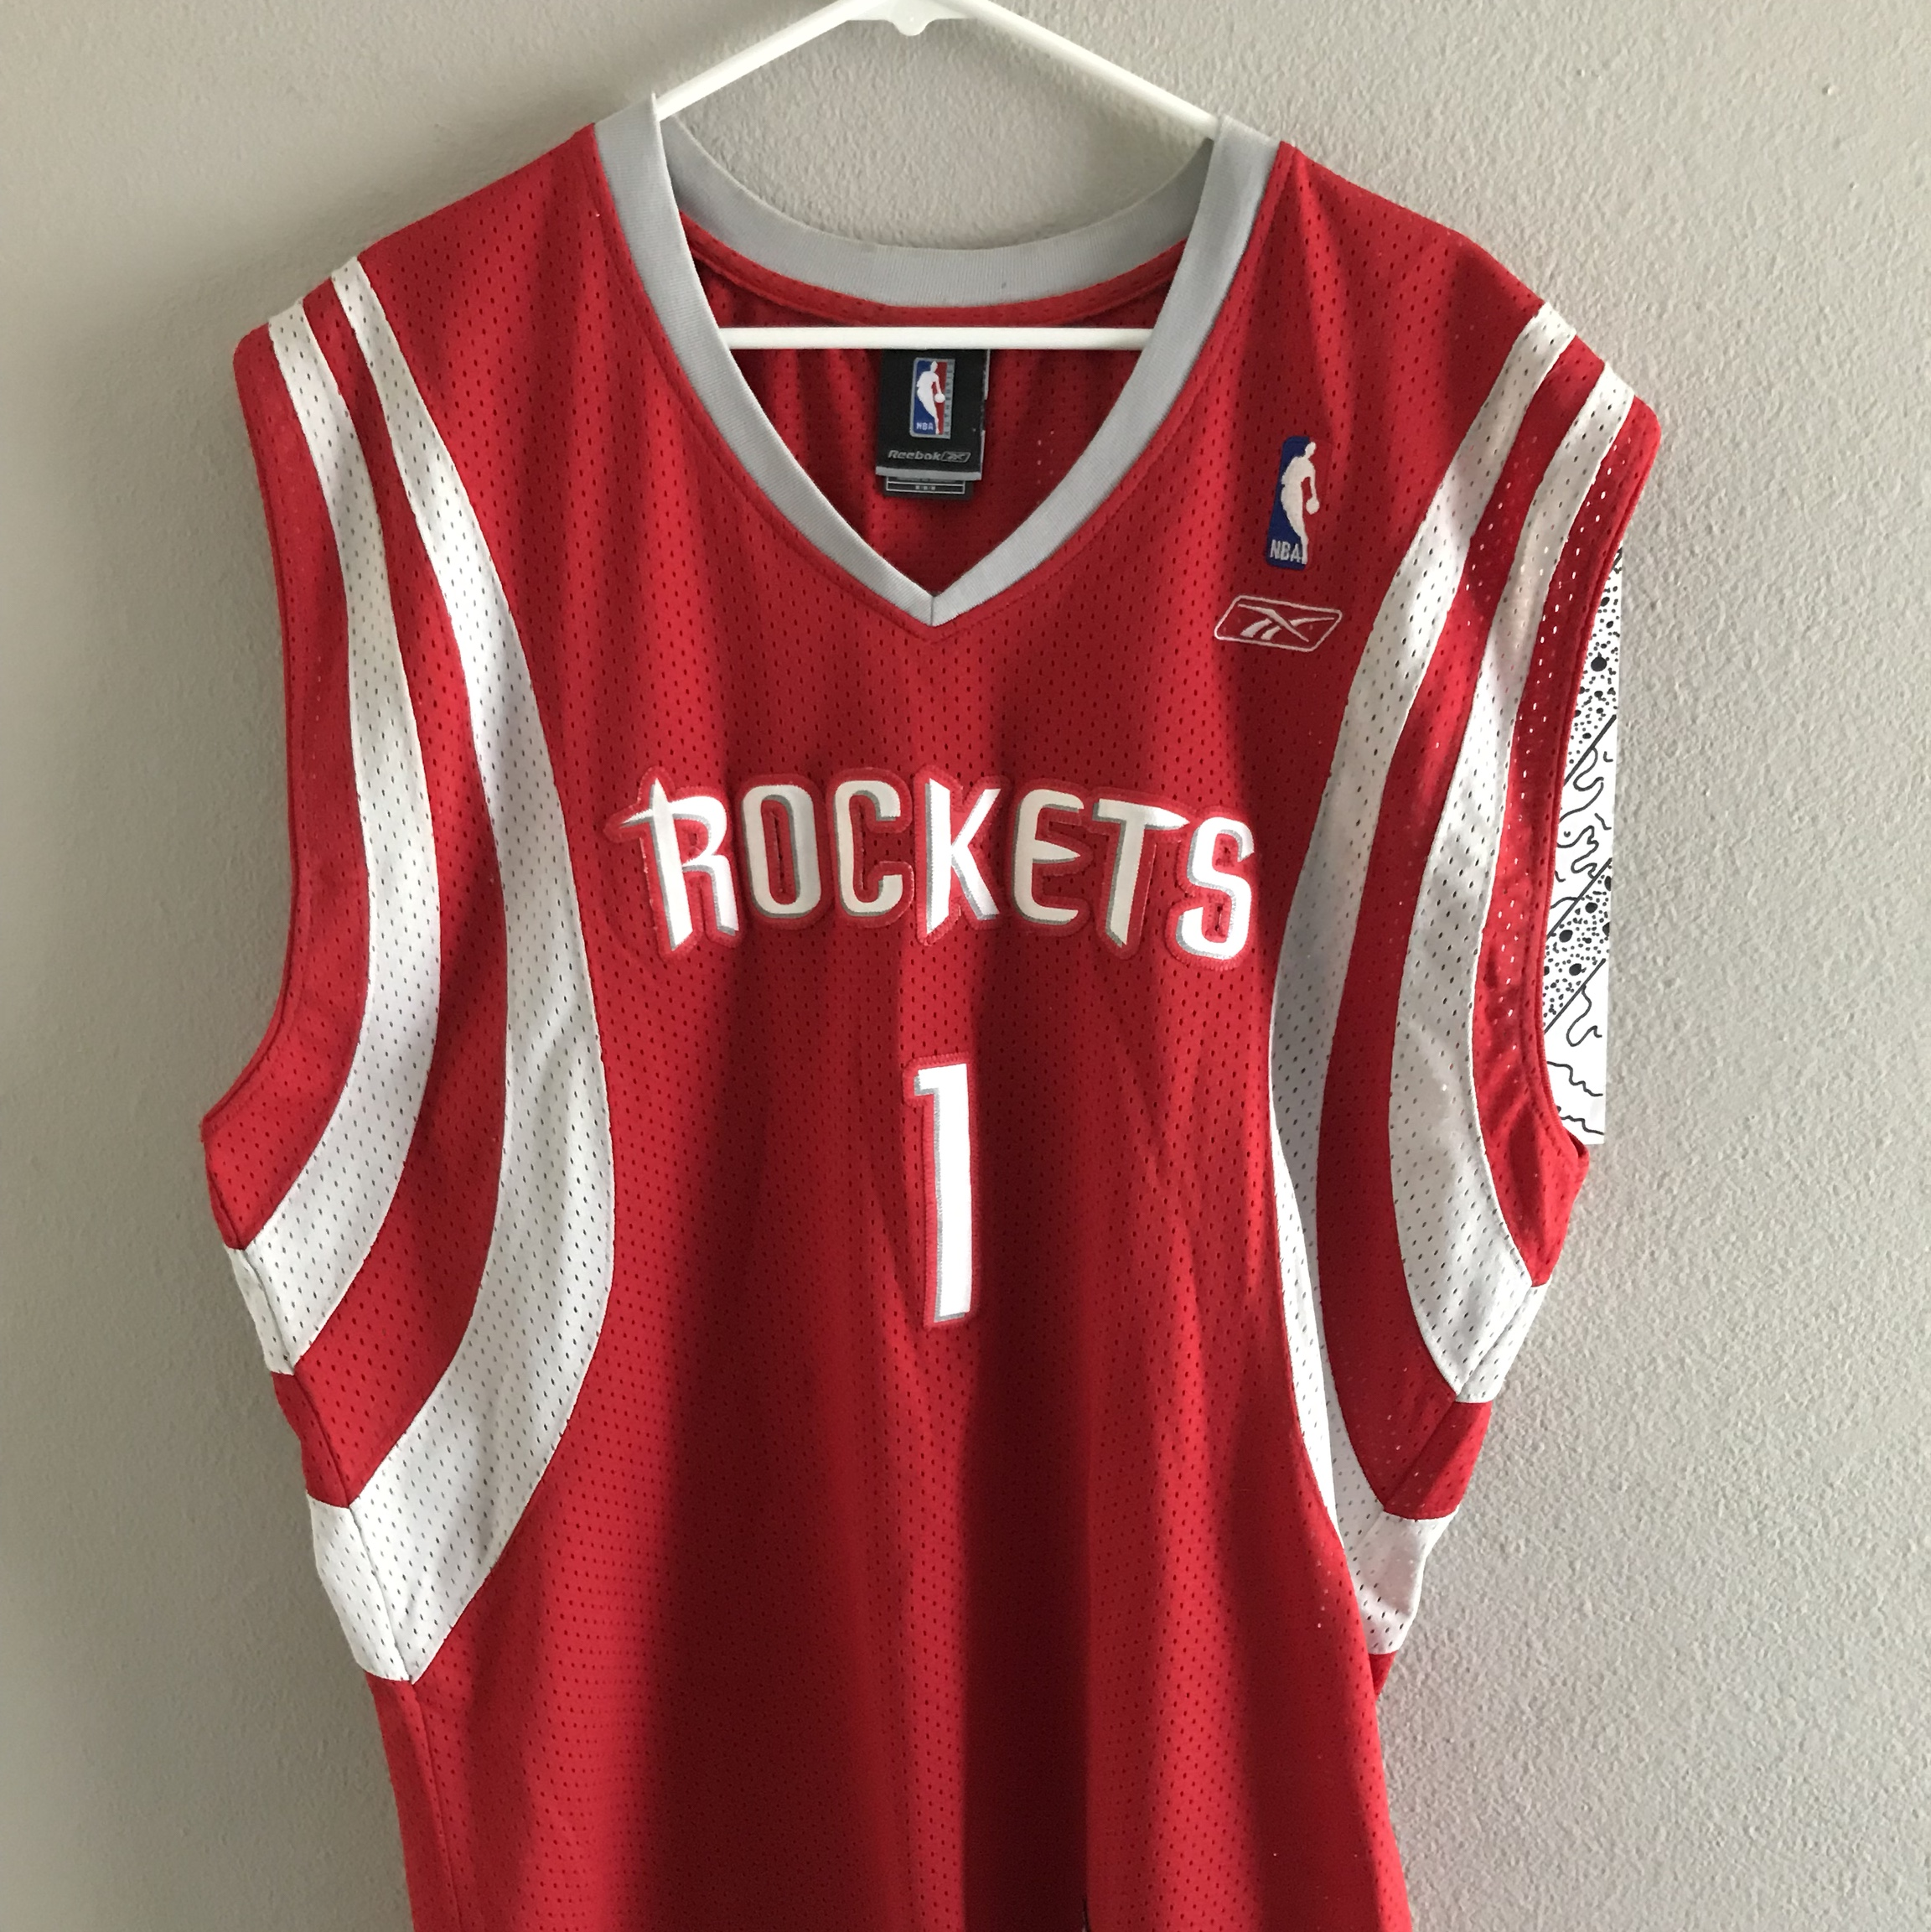 18dbeaece2b Reebok Tracy Mcgrady Houston Rockets 2007-2008 Jersey Red . - Depop